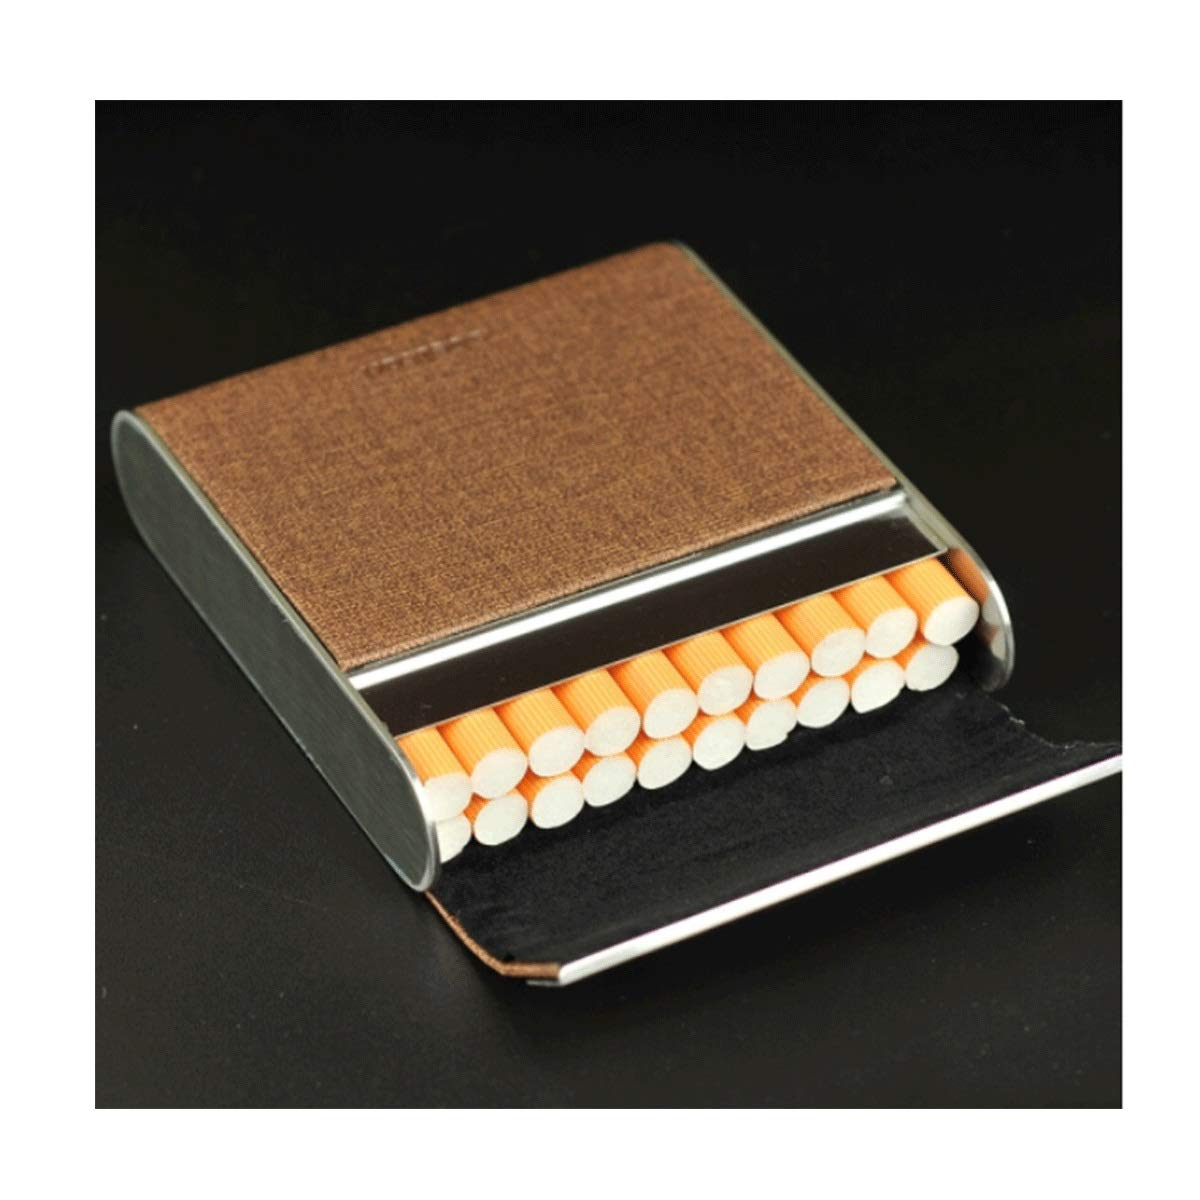 SHENGSHIHUIZHONG Cigarette Box Creative Fabric Portable Cigarette Case Men And Women Personality Flip Ultra-thin Cigarette Box Fashion Cigarette Pack Can Accommodate 20 Cigarettes (two Colors Optional